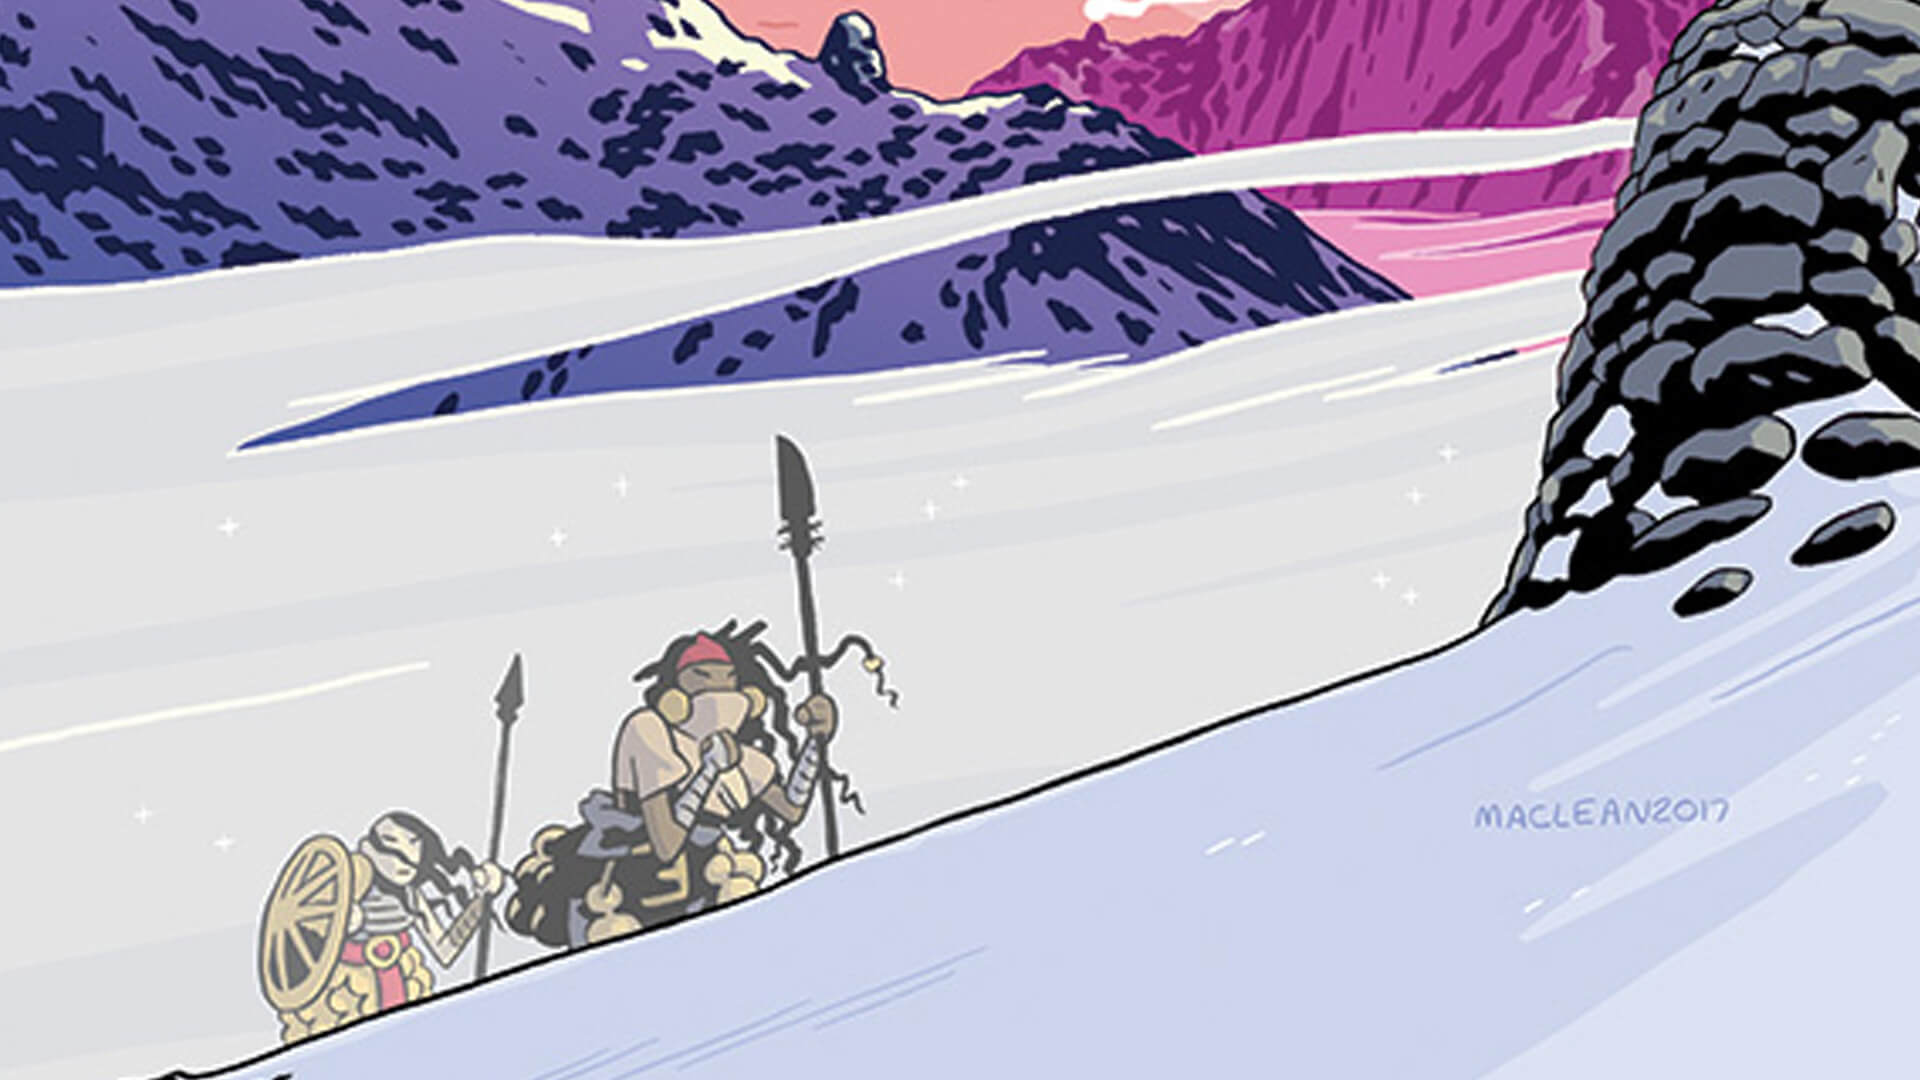 Head Lopper #6: Part 2 of the Crimson Tower Review